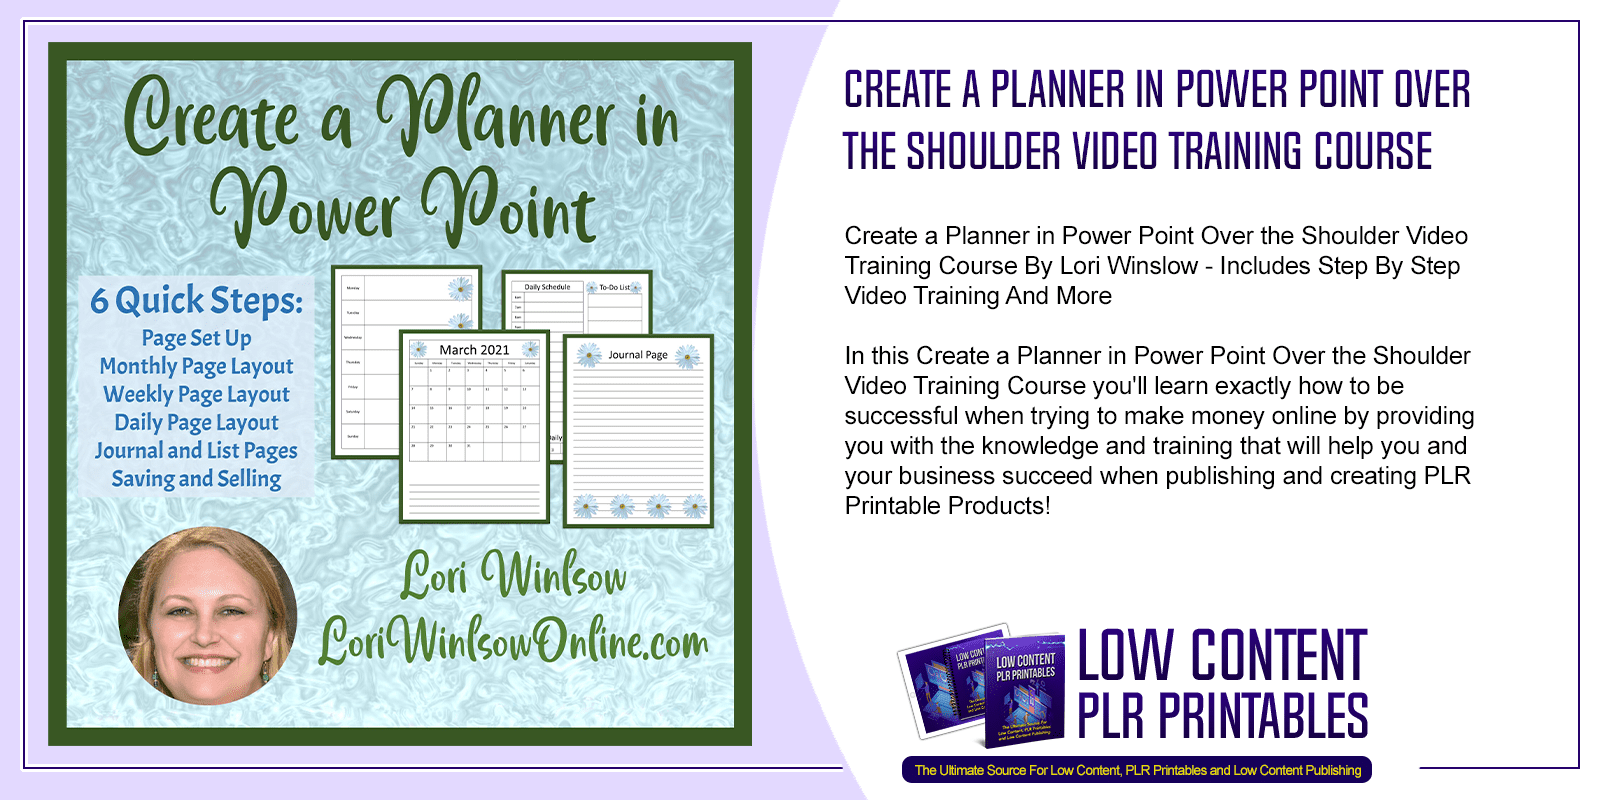 Create a Planner in Power Point Over the Shoulder Video Training Course